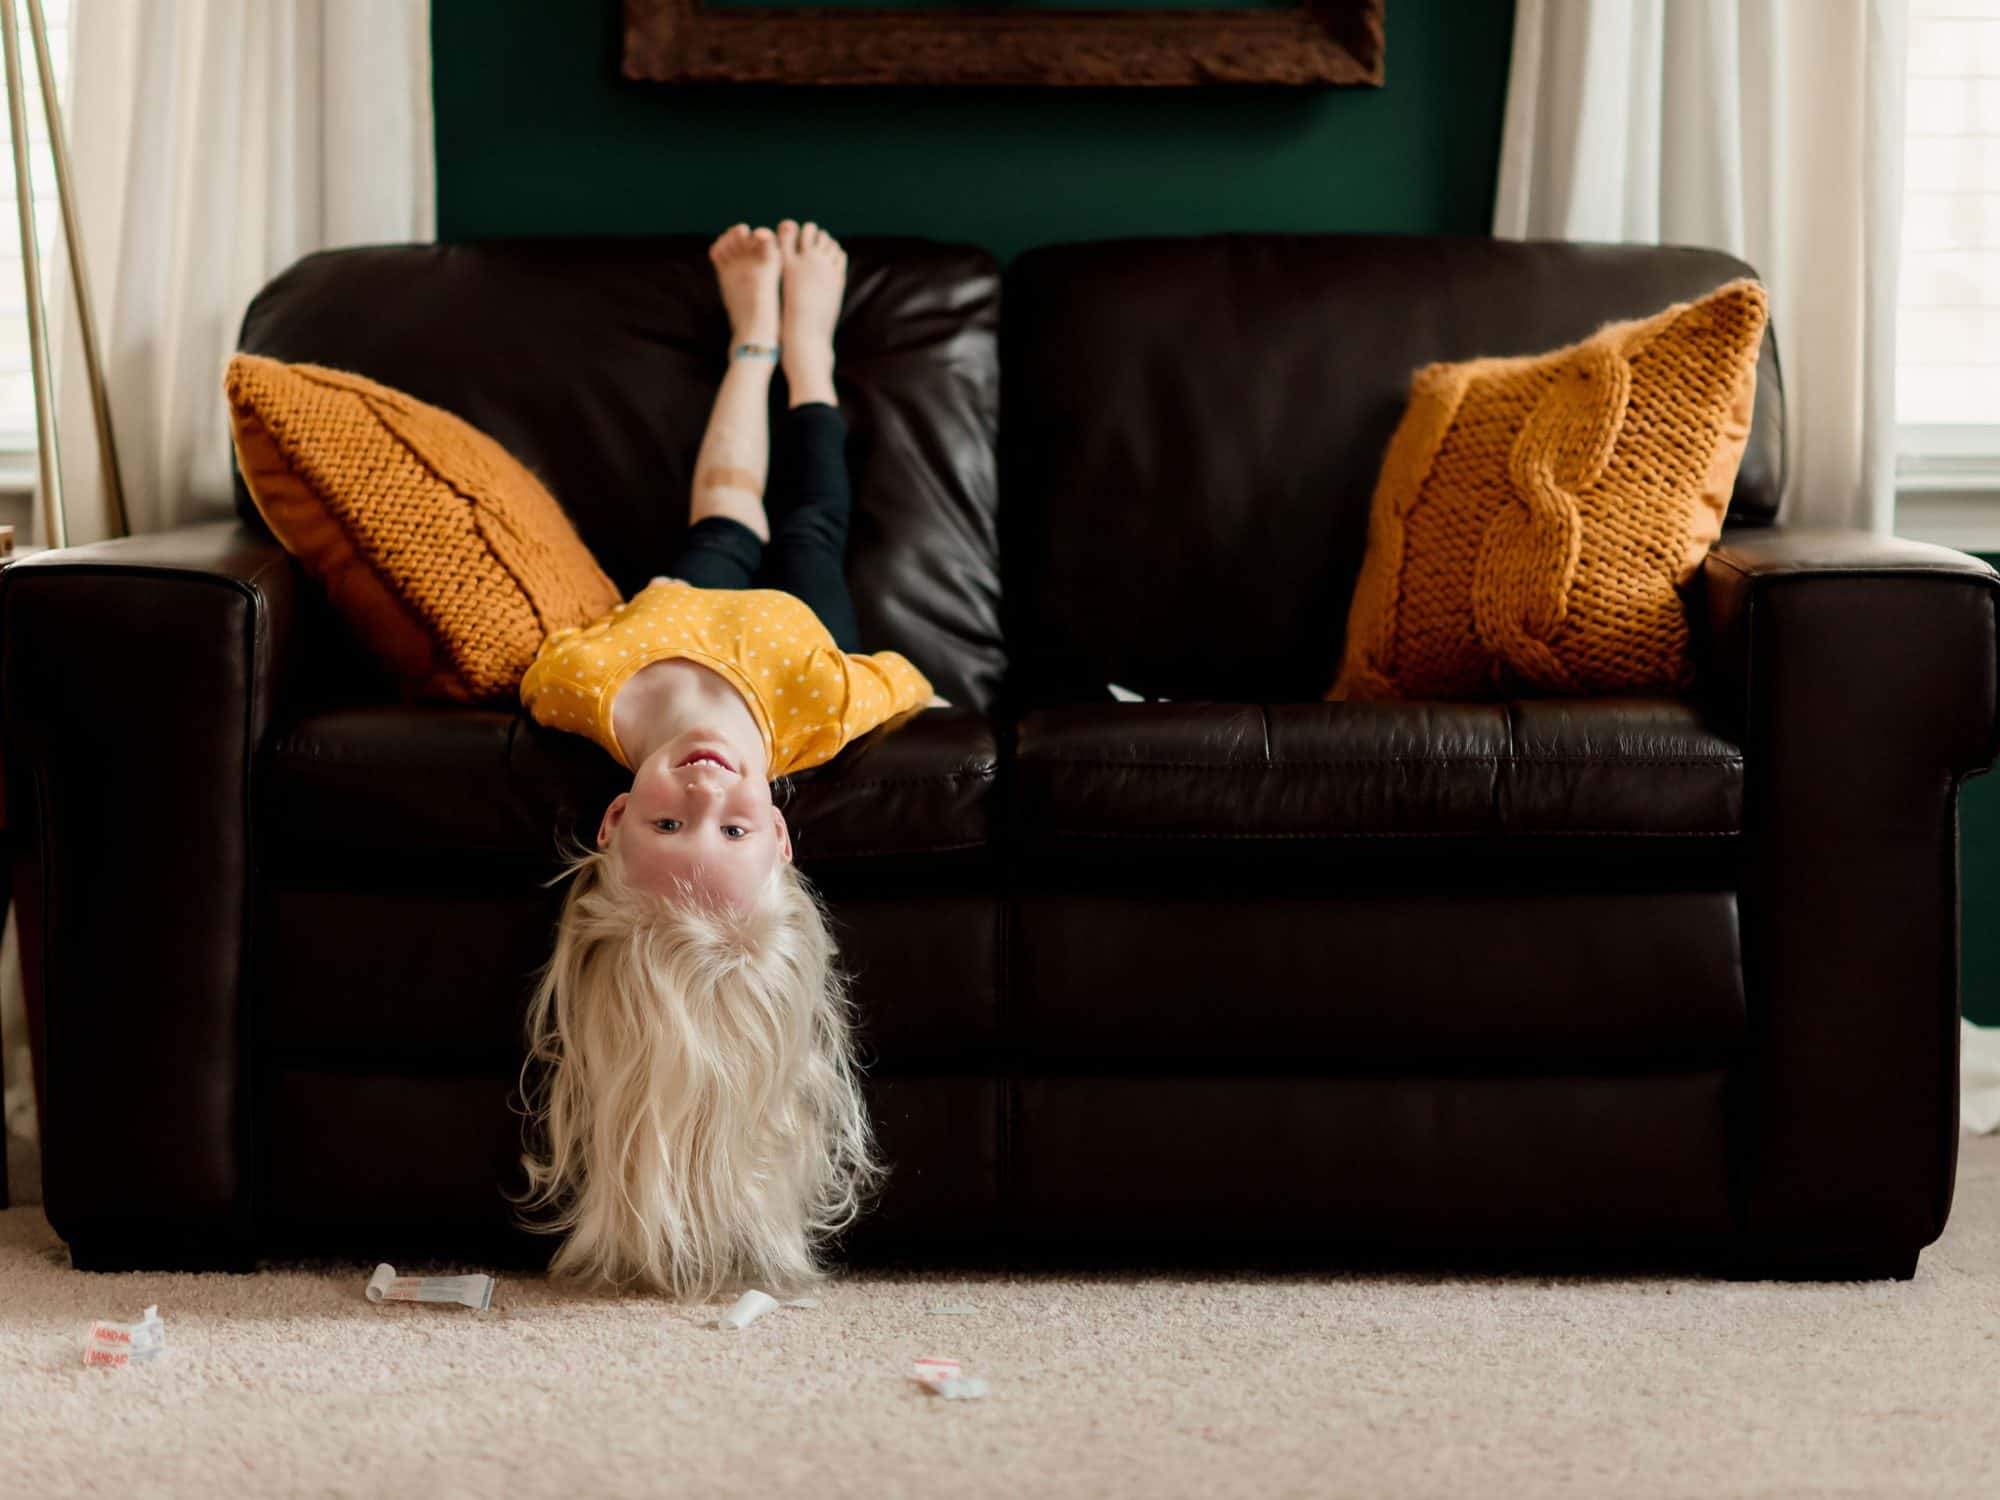 A child hanging off a leather couch upside down